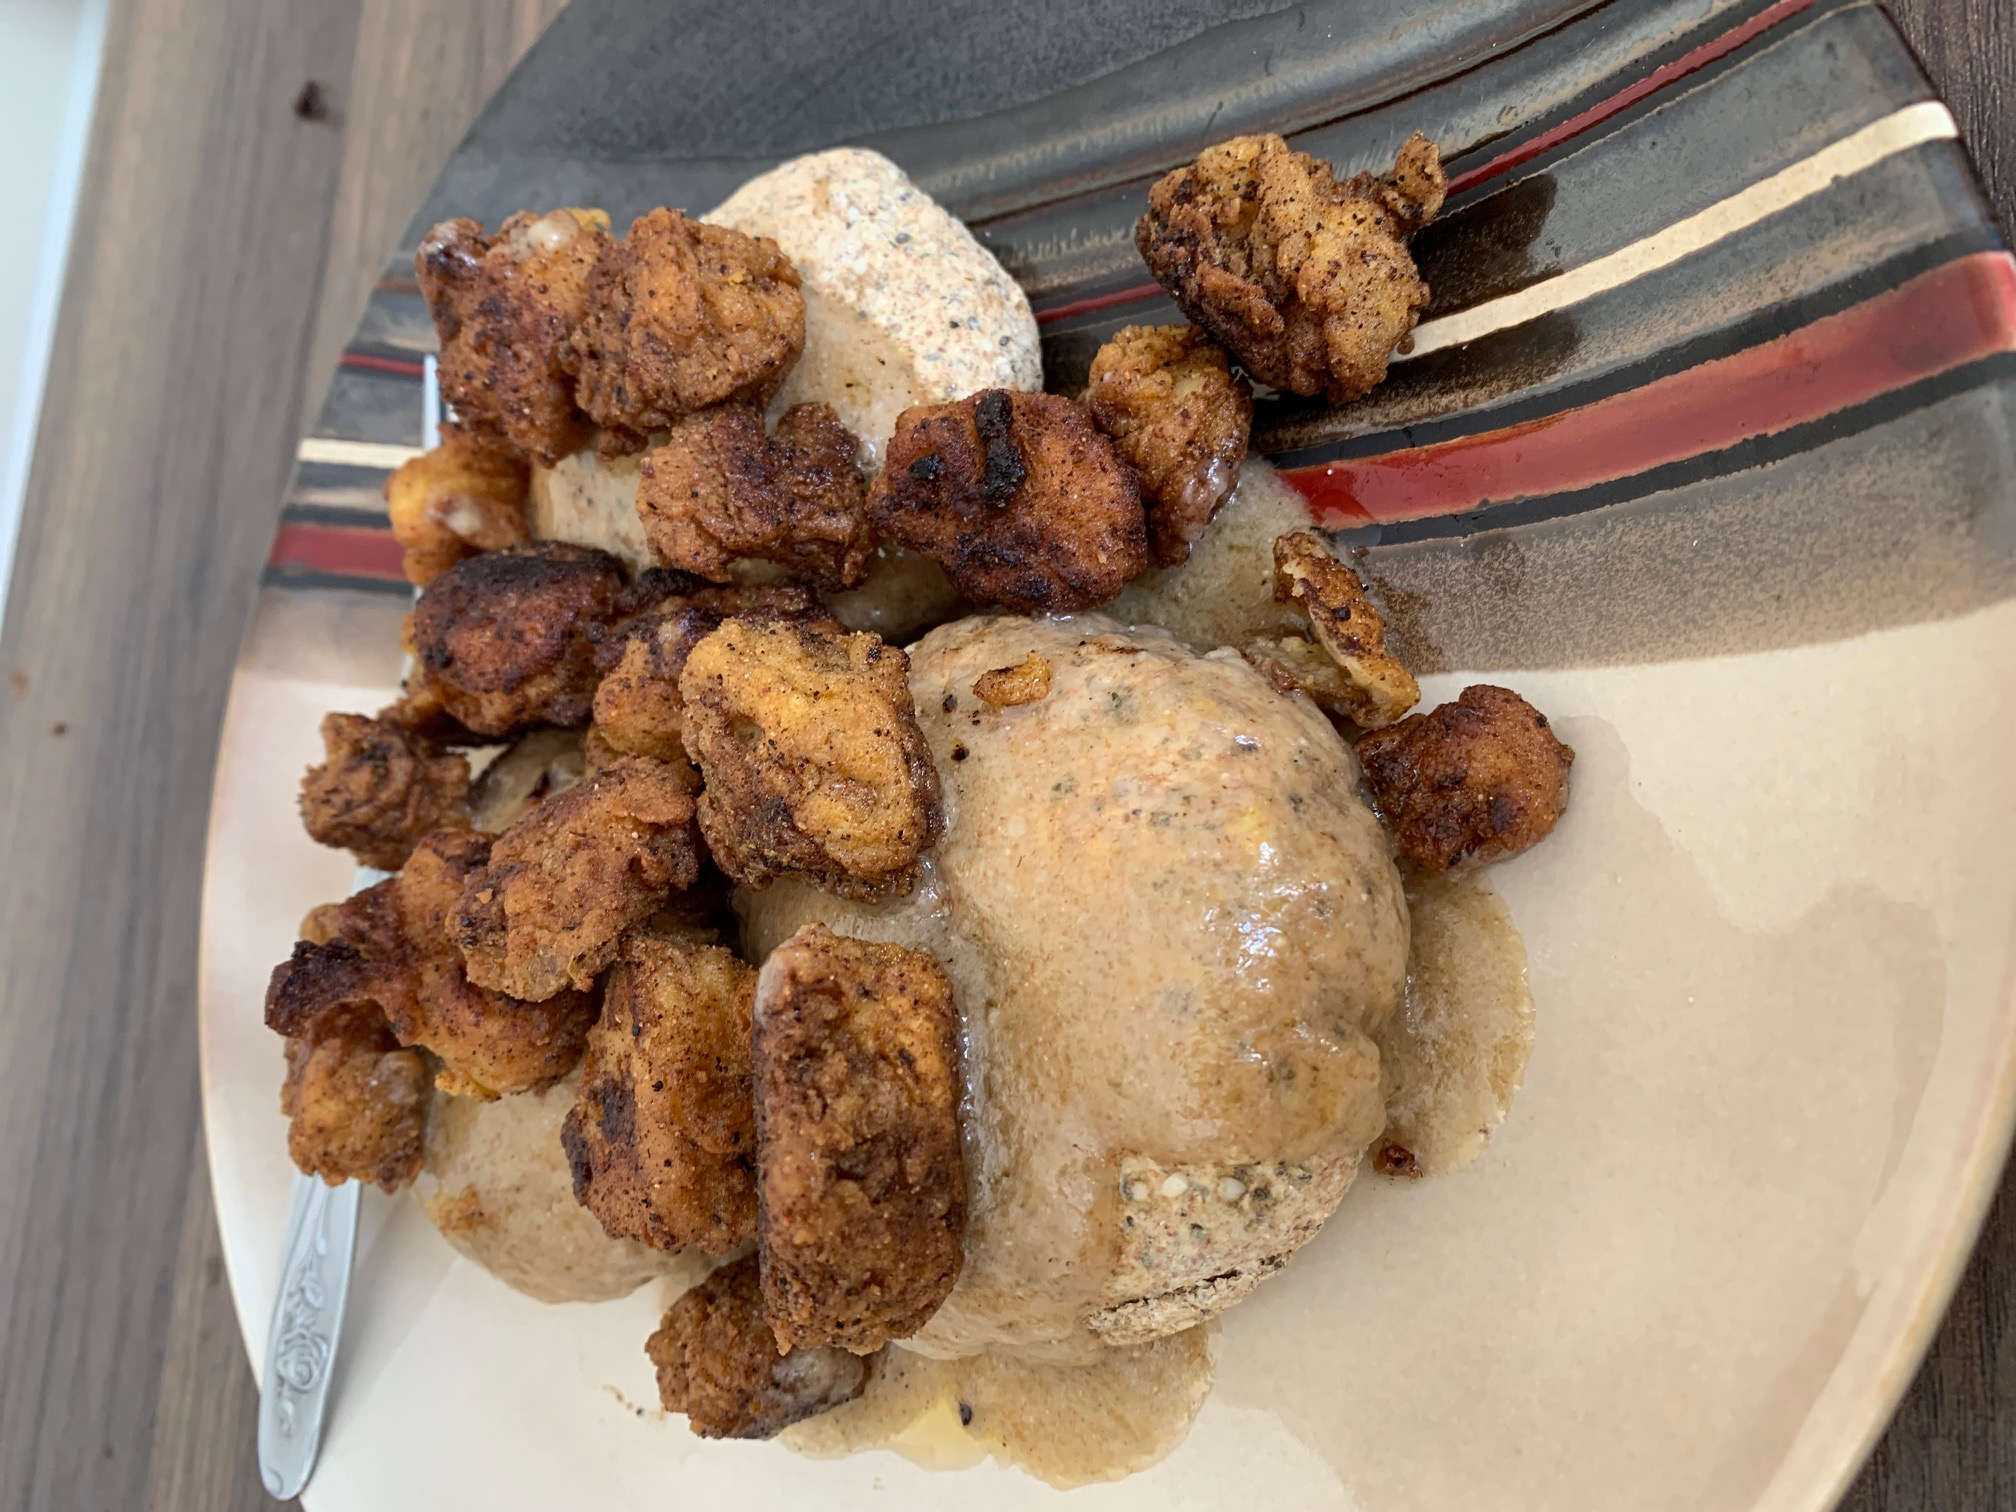 buscuits and fried chixx